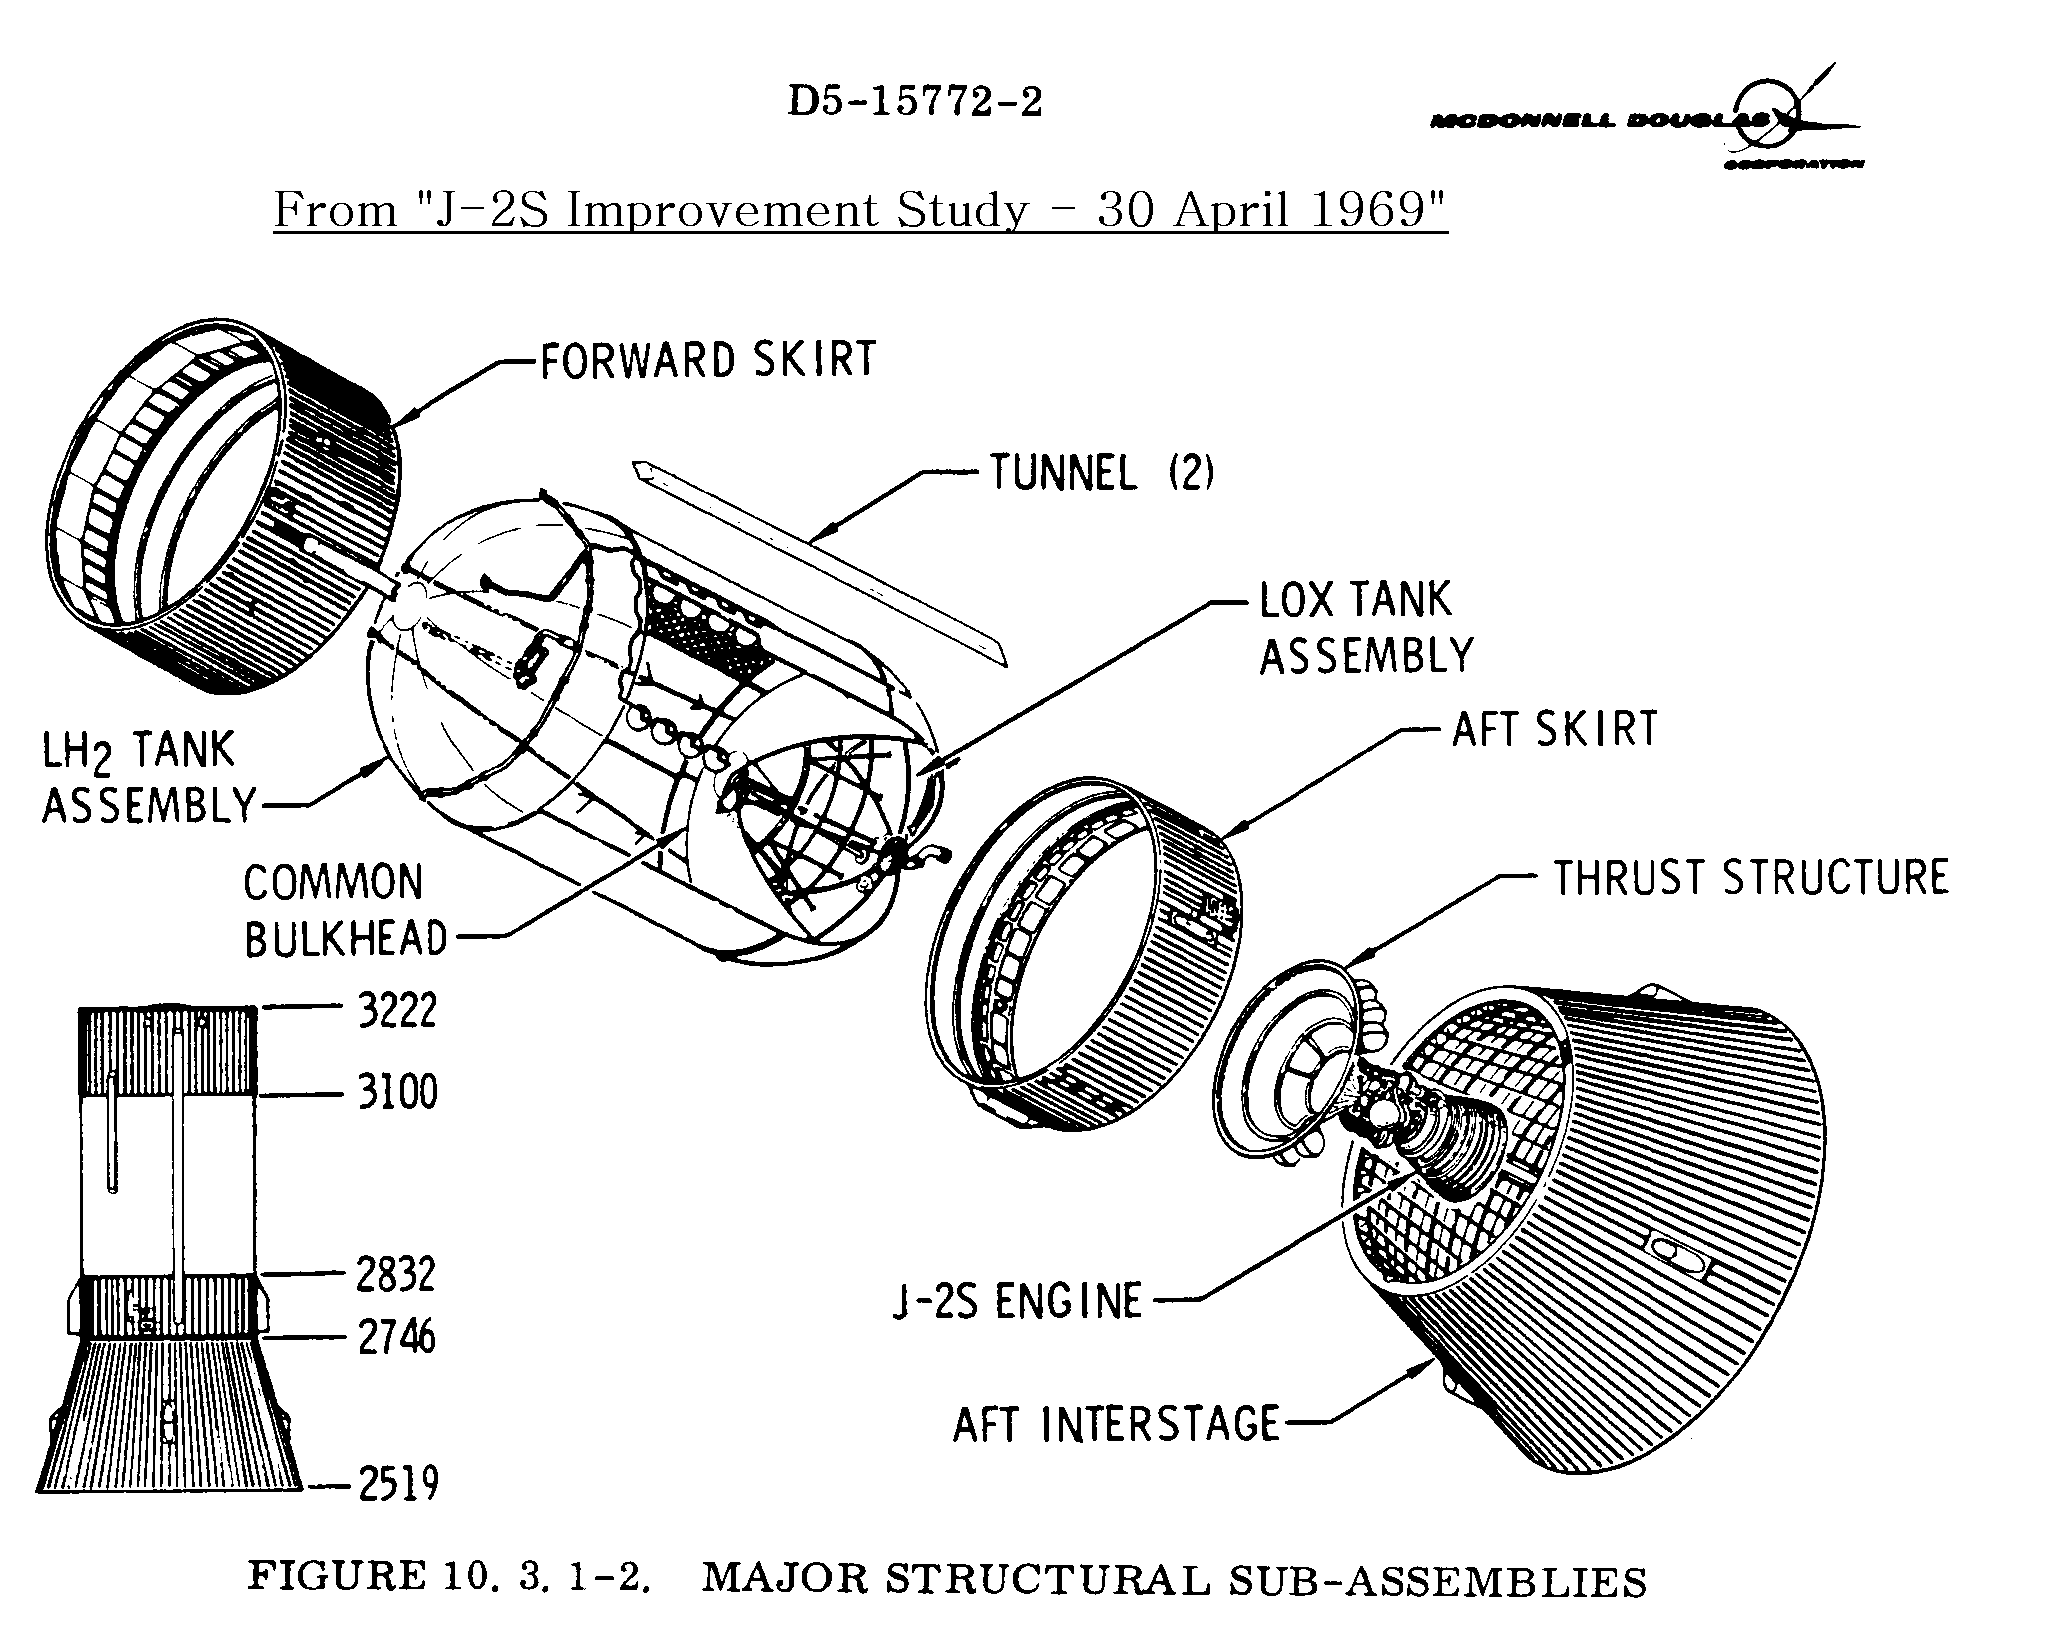 Saturn Launch Vehicle Information Automotive Engine Diagrams S Ivb Stage Inboard Diagram 1963 1964 Structure